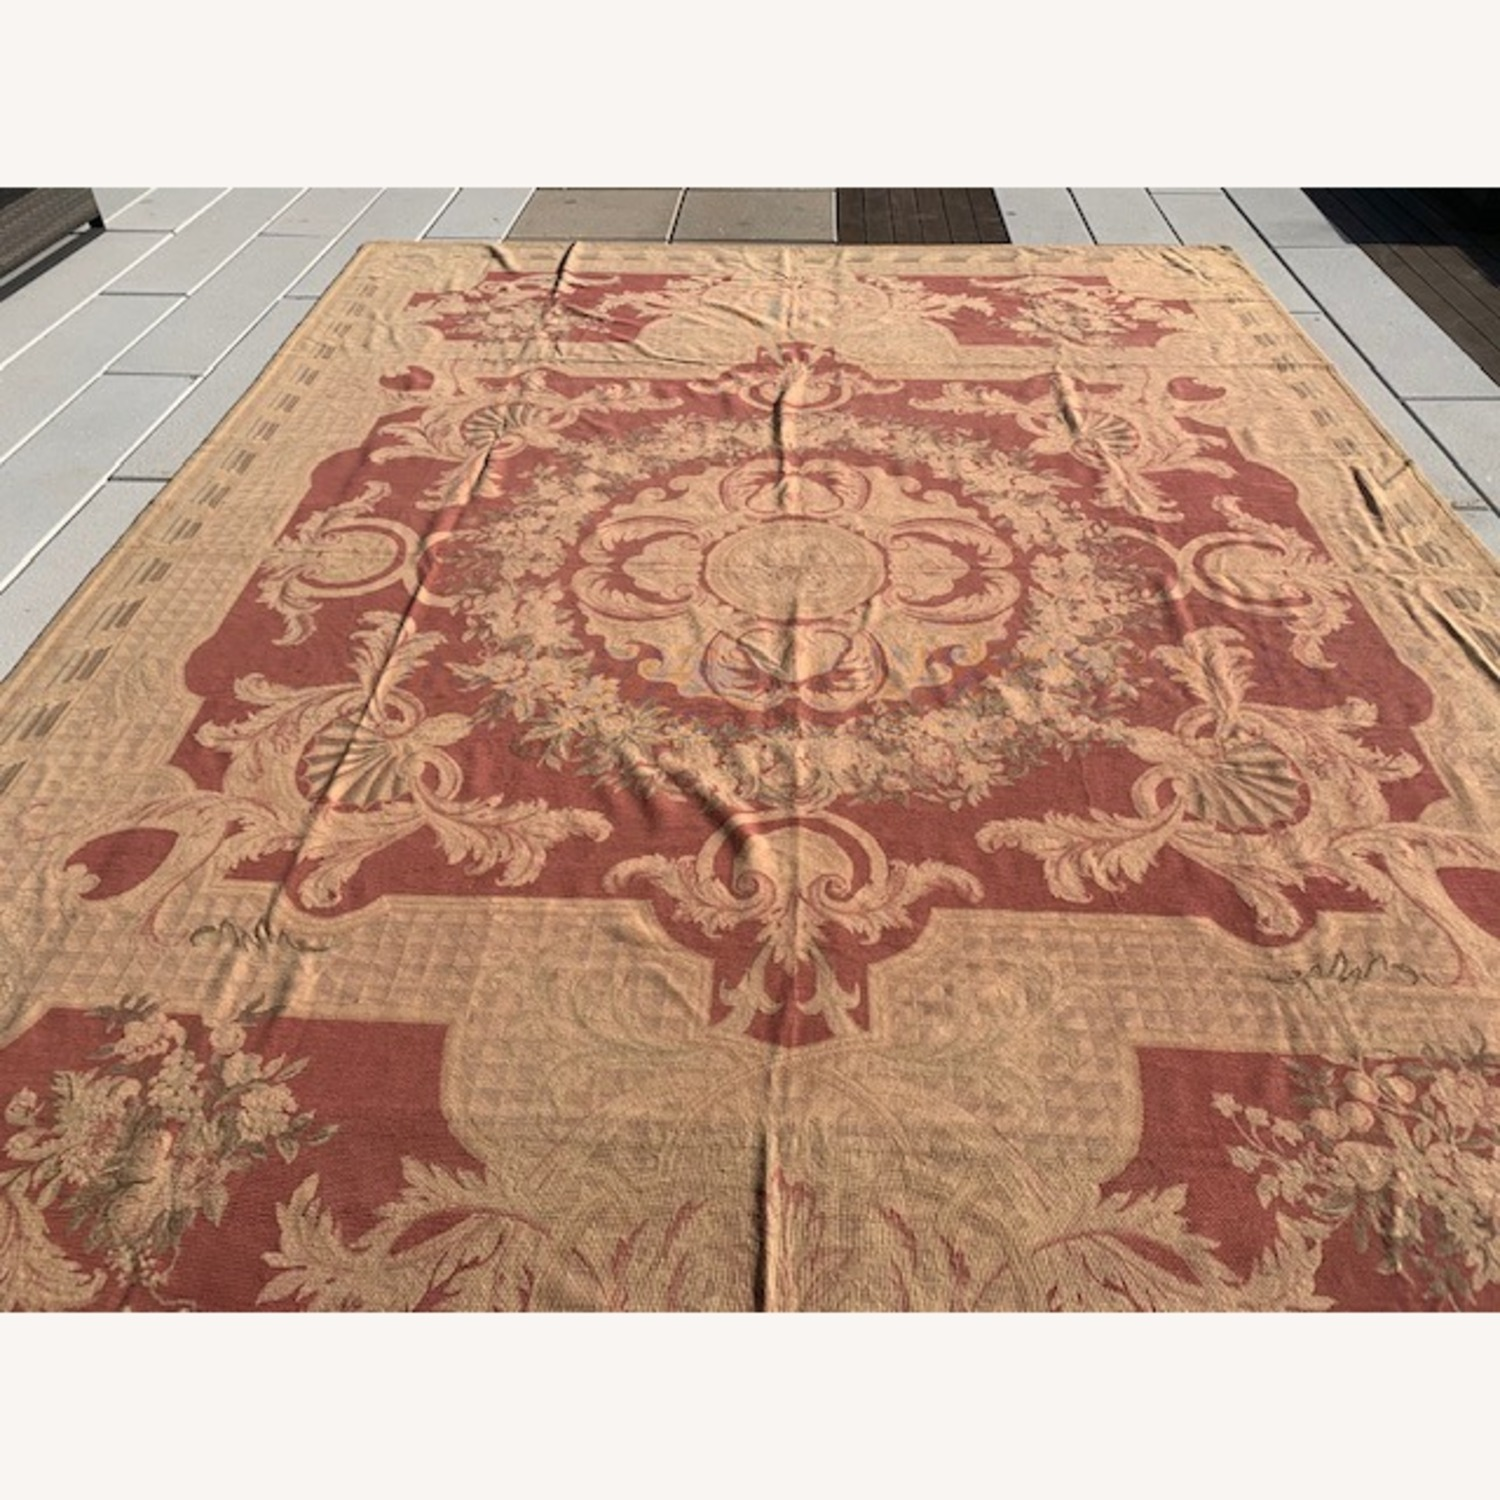 Vintage Aubusson flat weave Red and Tan rug - image-4